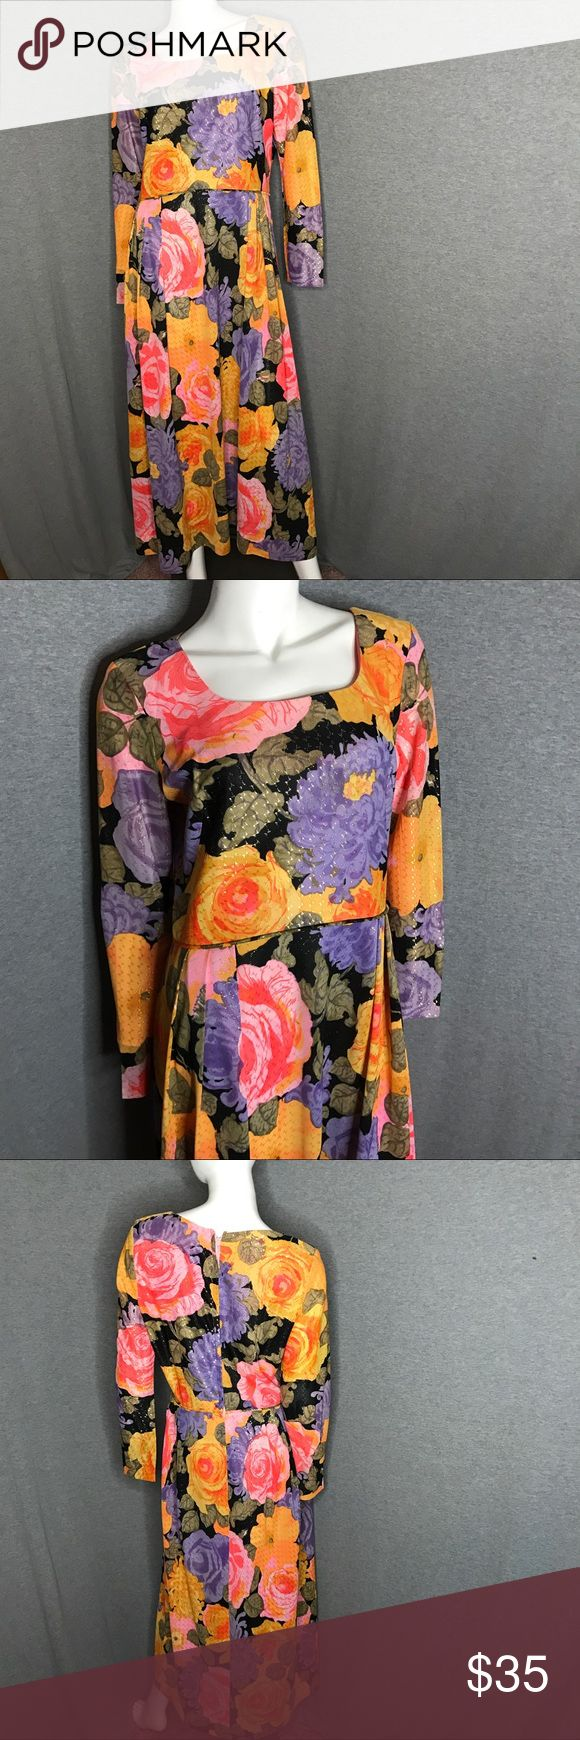 VINTAGE Metallic Floral Dress VINTAGE Metallic Floral Dress Vintage Dresses Maxi